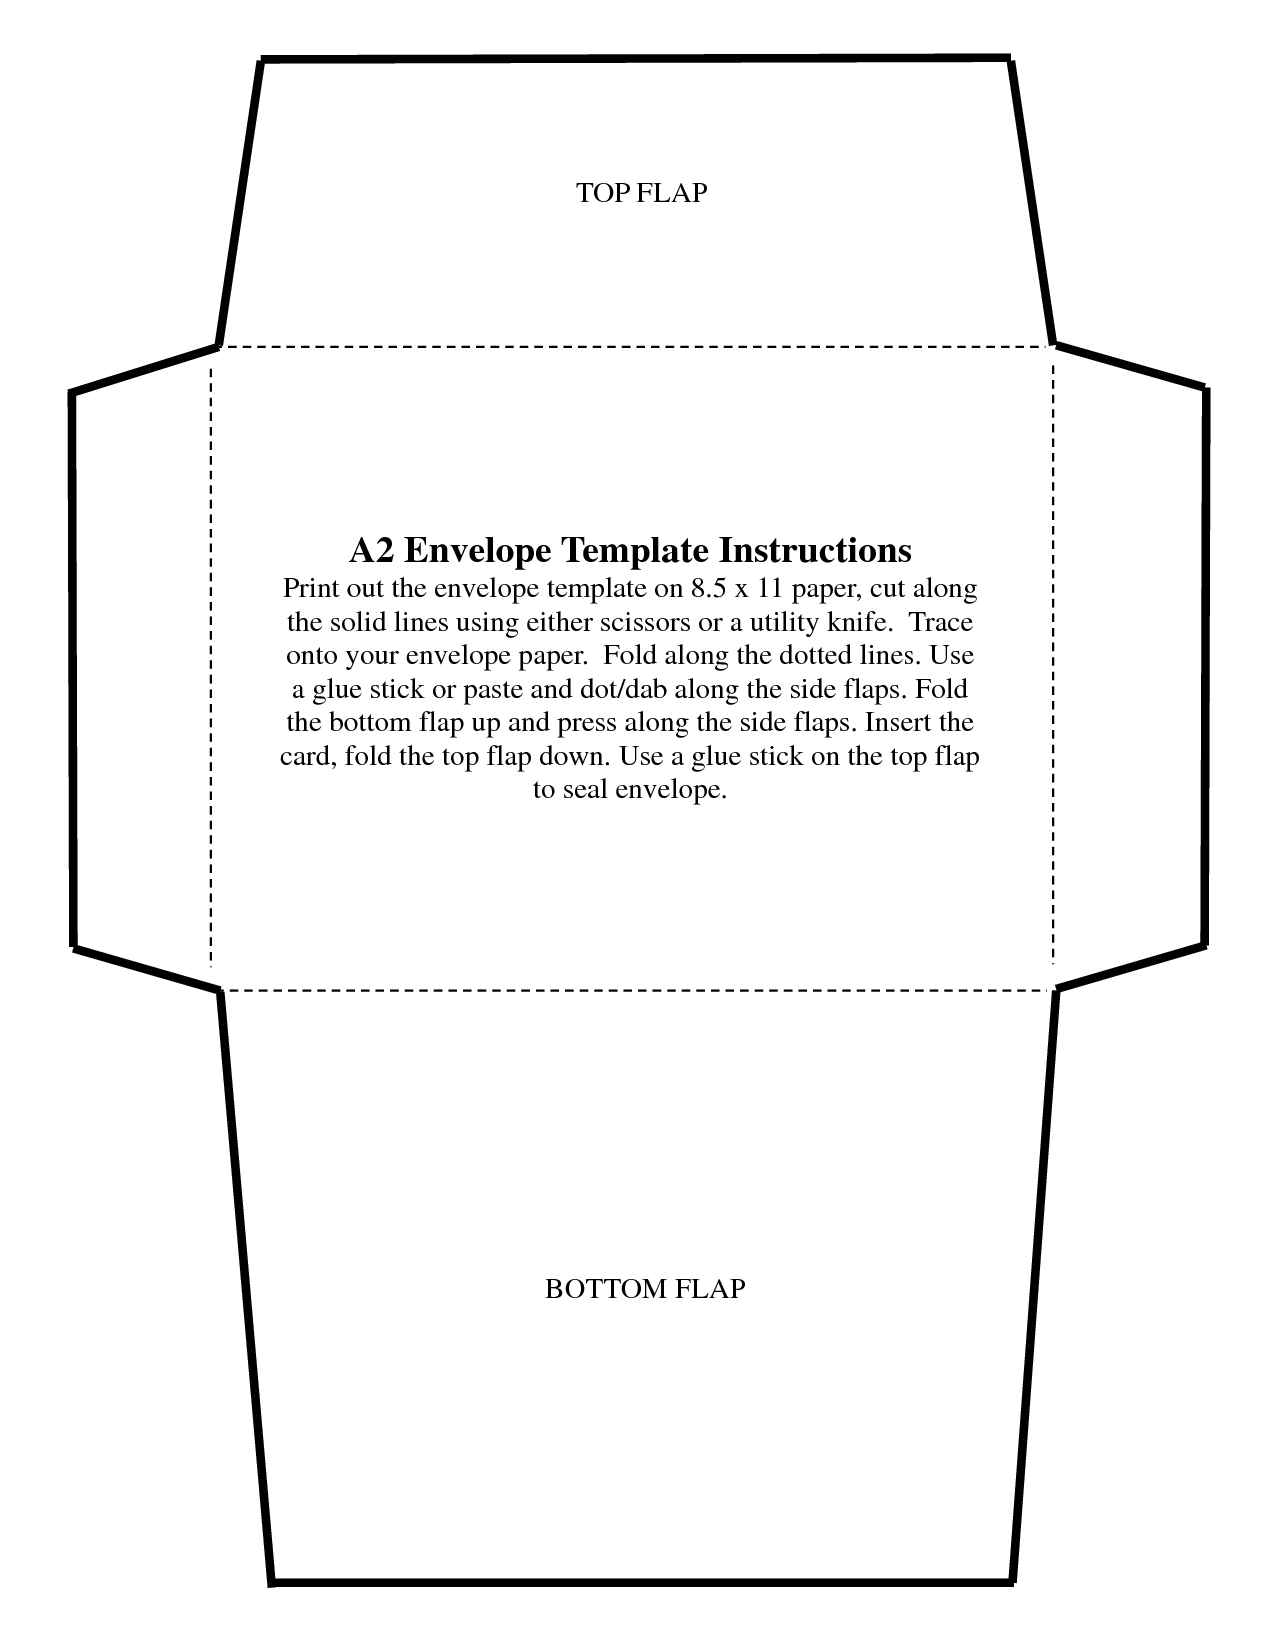 5x7 envelope templates EKaRIOuq | Crafty Crafts | Pinterest | 5x7 ...